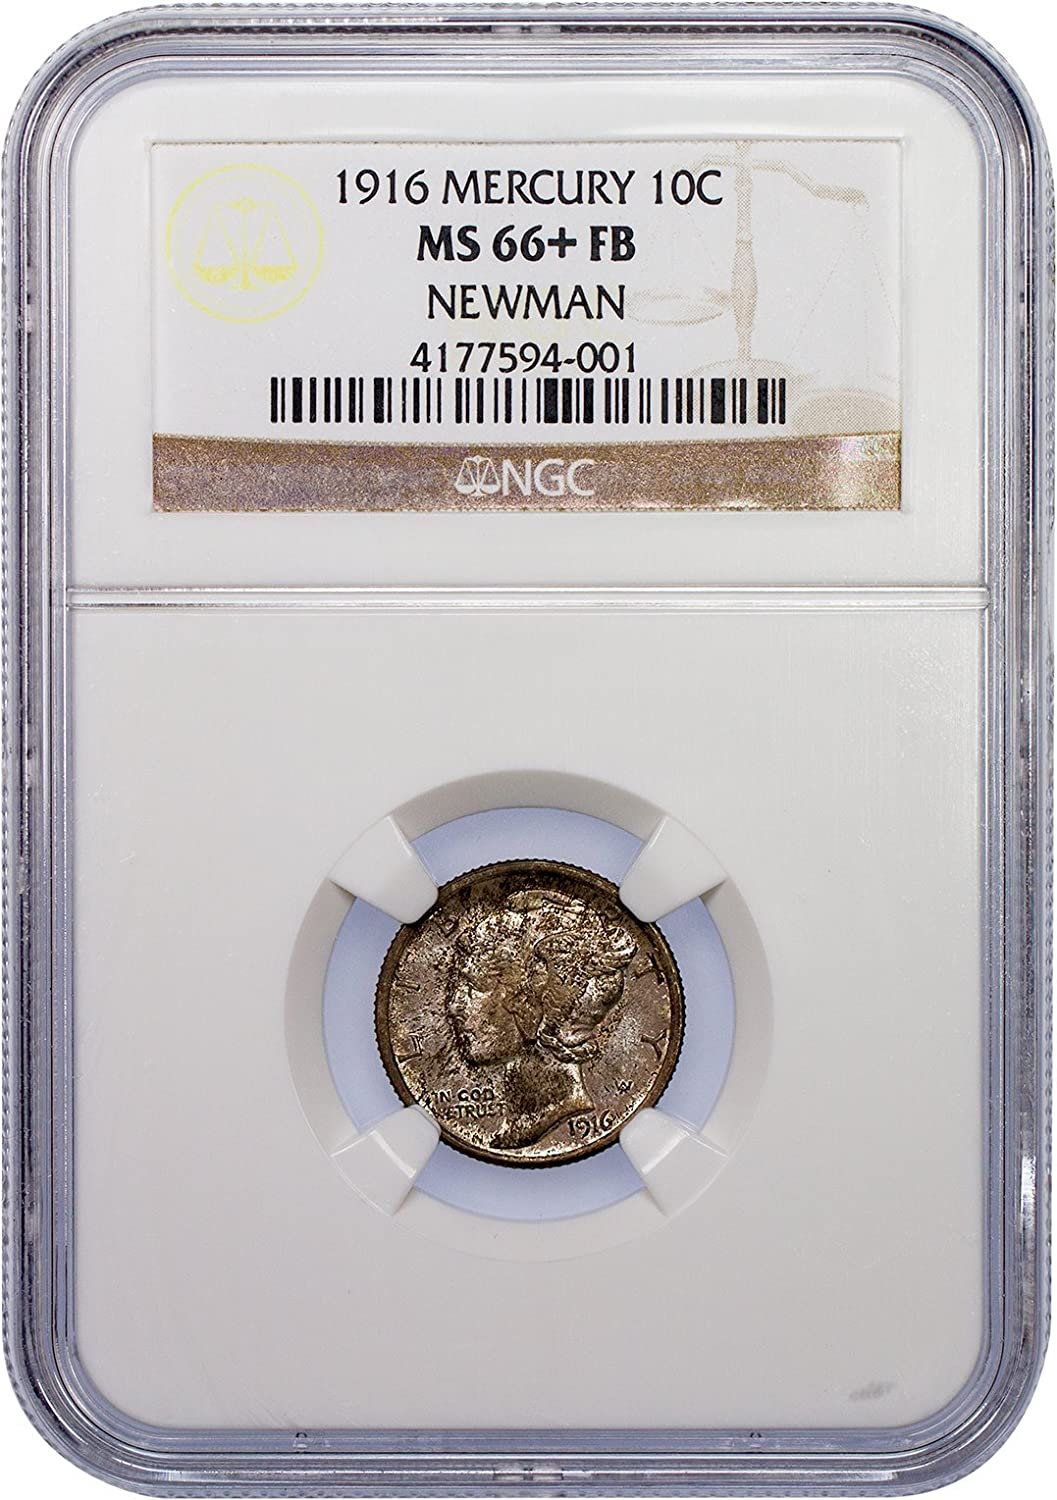 1944 D Mercury Dime certified MS 66 FB by NGC Full Bands!